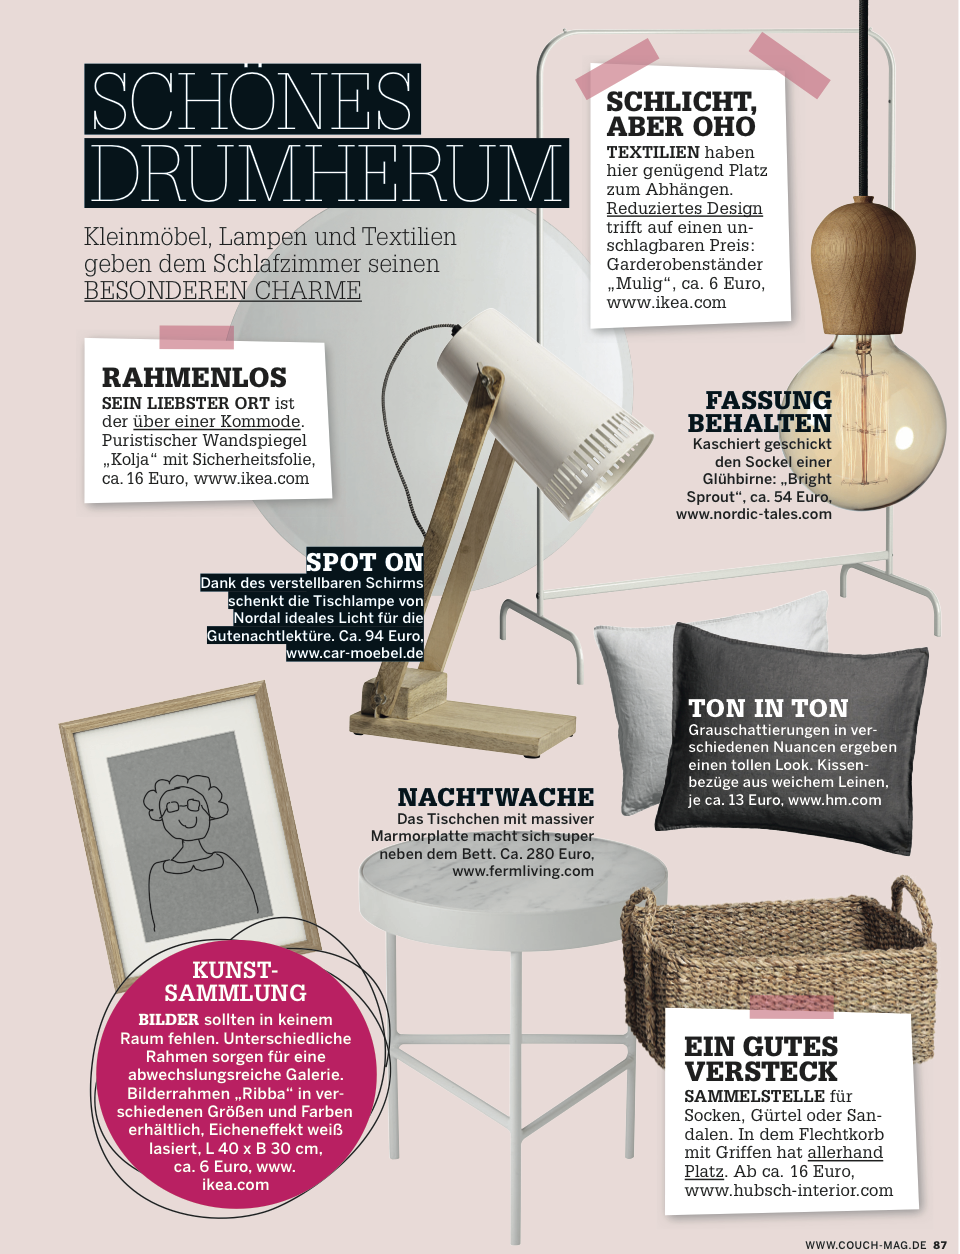 couch mag de interview in couch magazine germany with couch mag de with couch mag de free. Black Bedroom Furniture Sets. Home Design Ideas